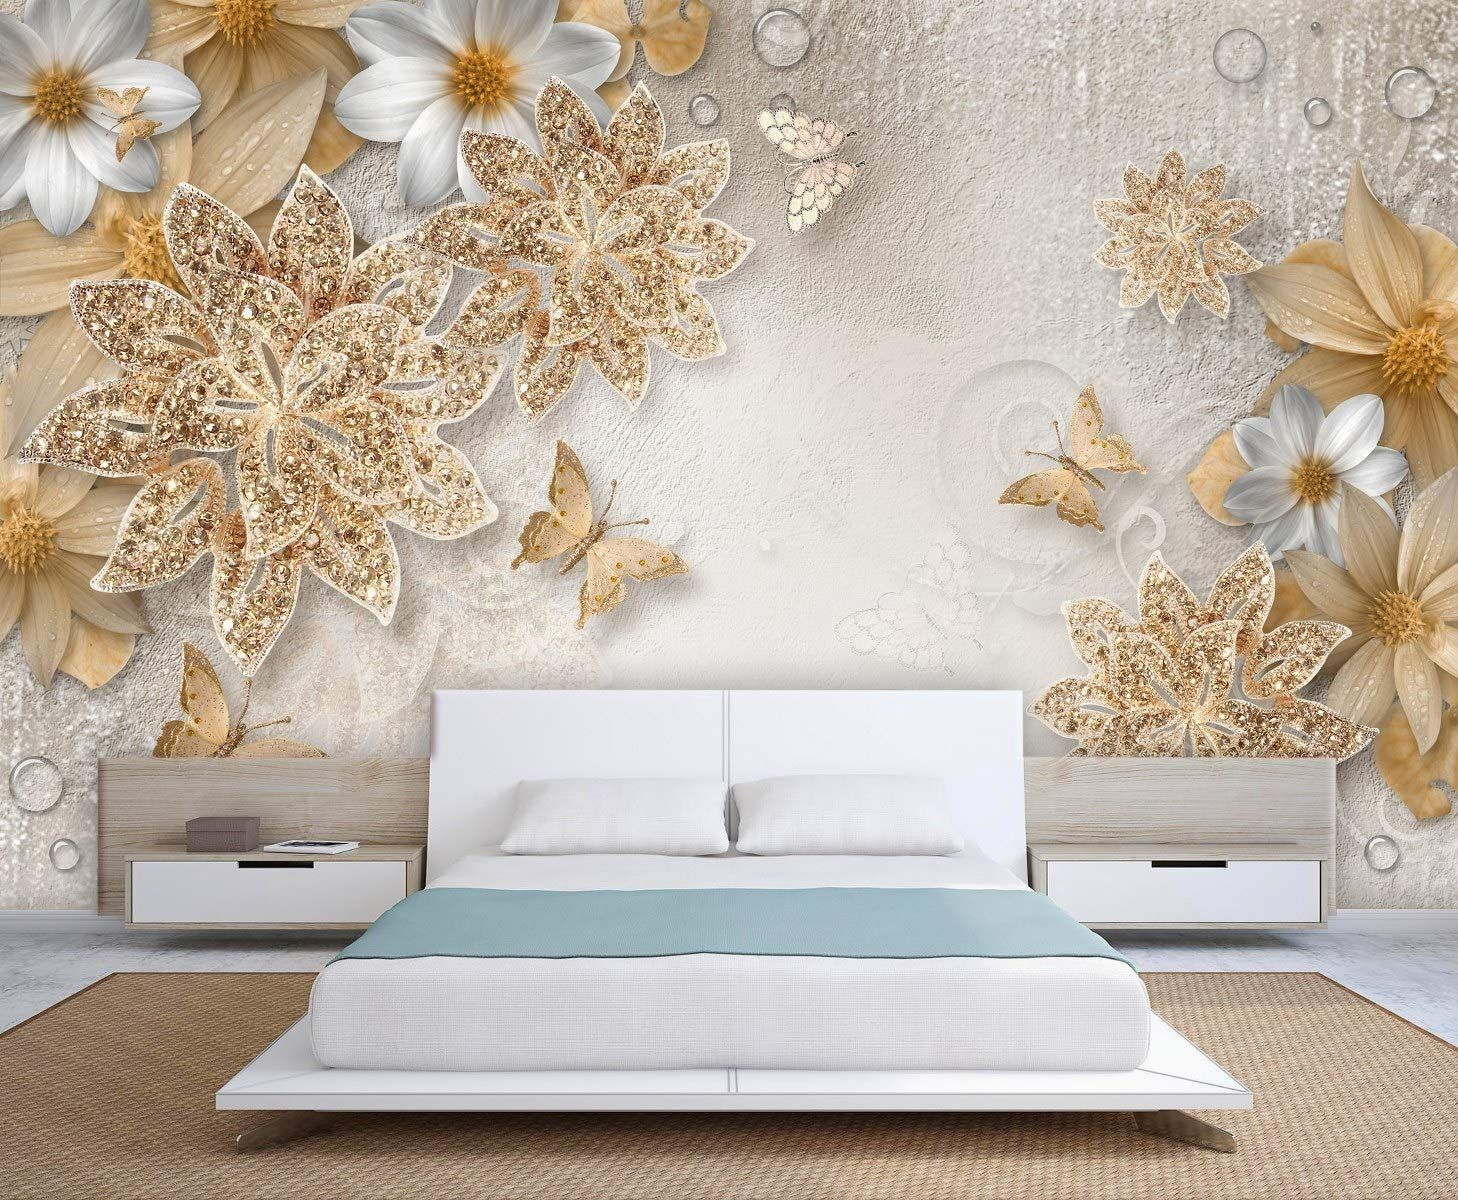 3d Golden White Flowers Wallpaper Beddingroom Study